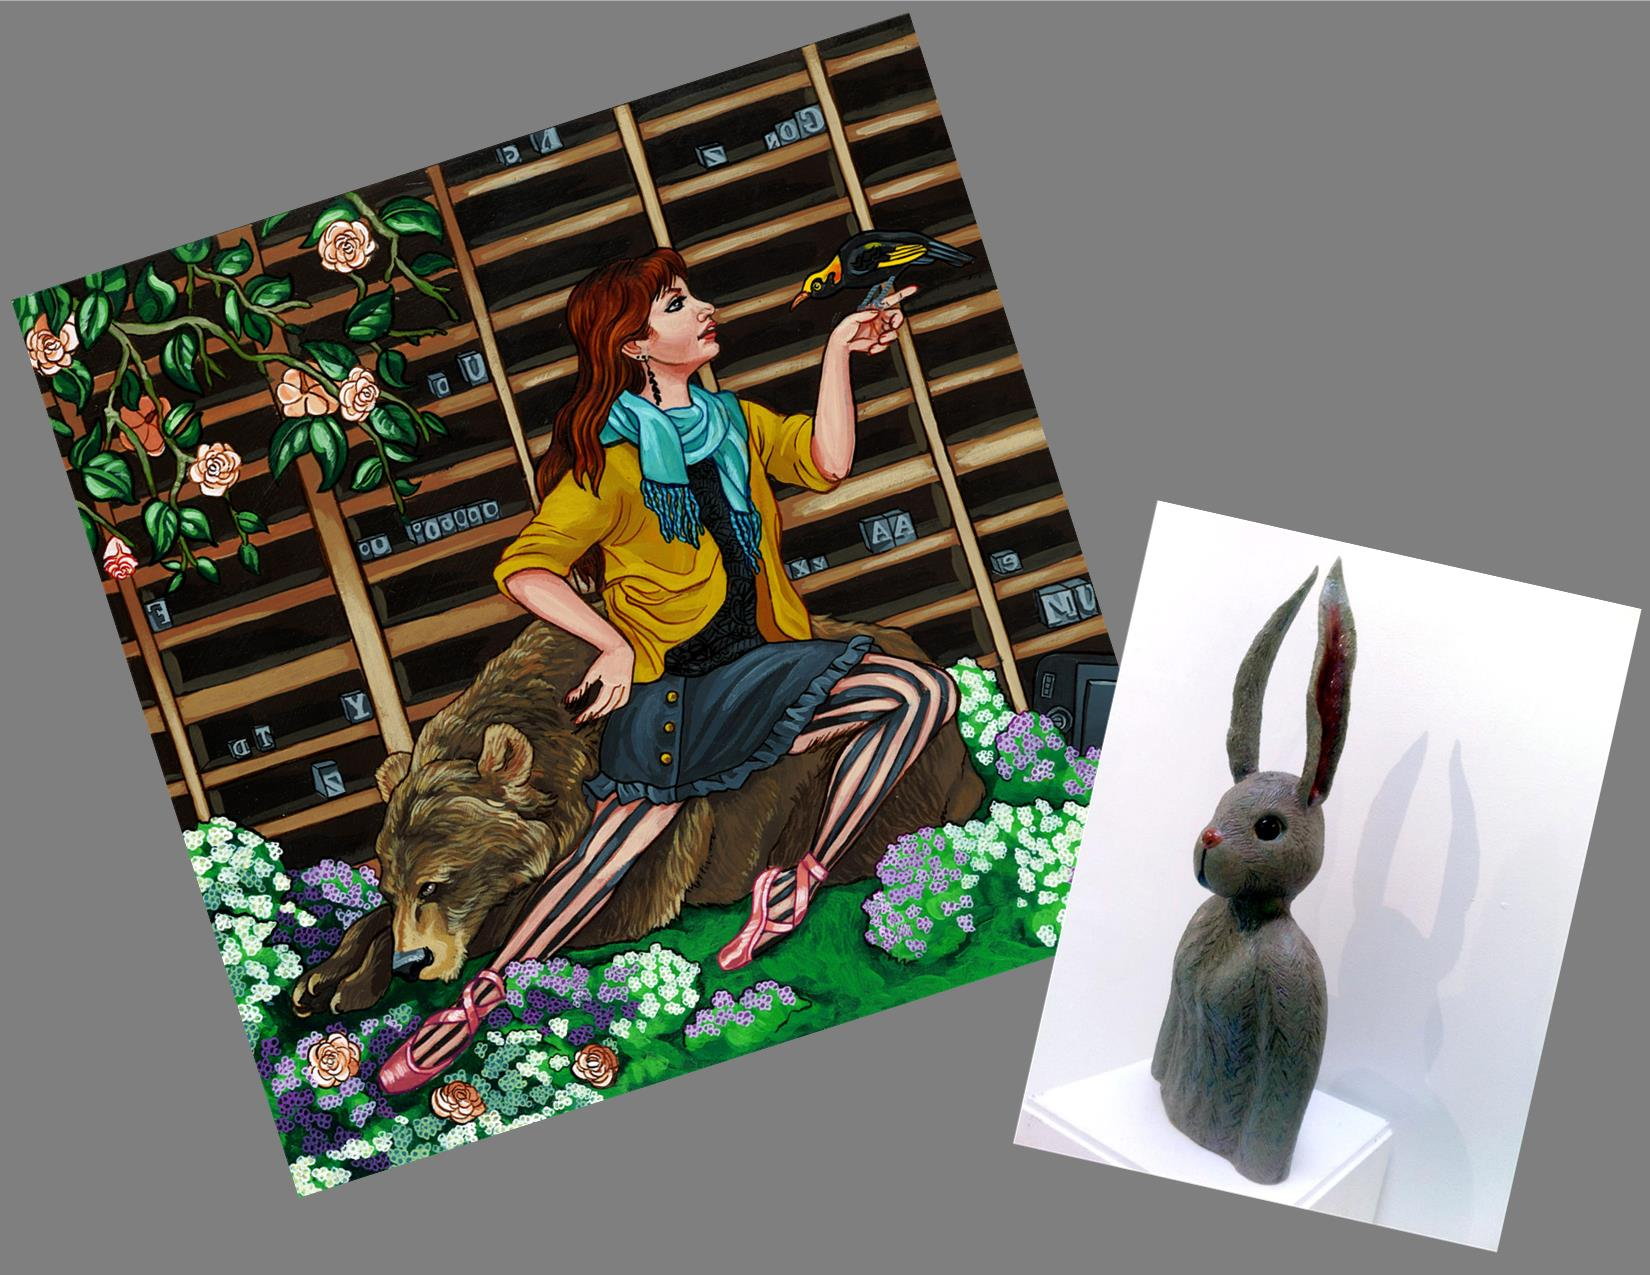 Calespso by Rachel Smith & Francesca Bunny by Molly Brown